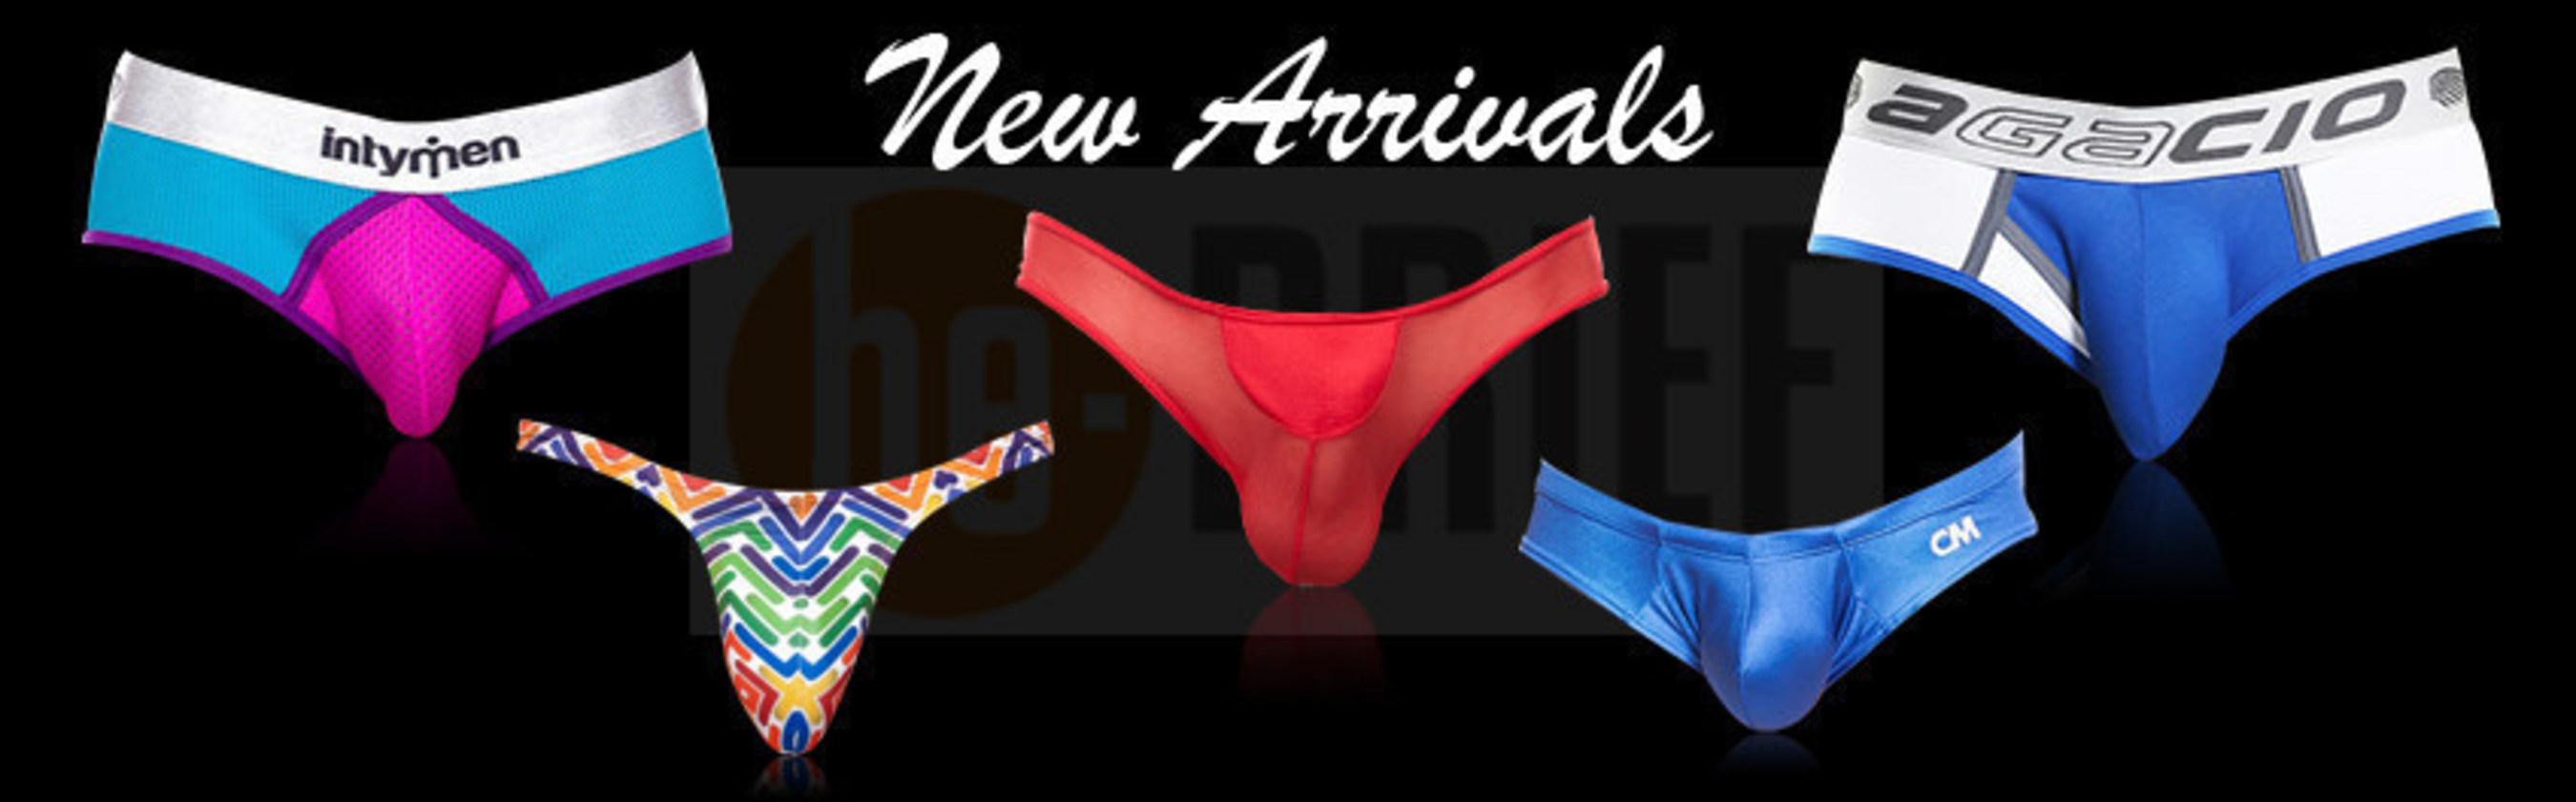 a0a89b6bd9f4 The online store opted to add the specific men's underwear brands for their  uniqueness and diversified assortment for the variety of personalities.